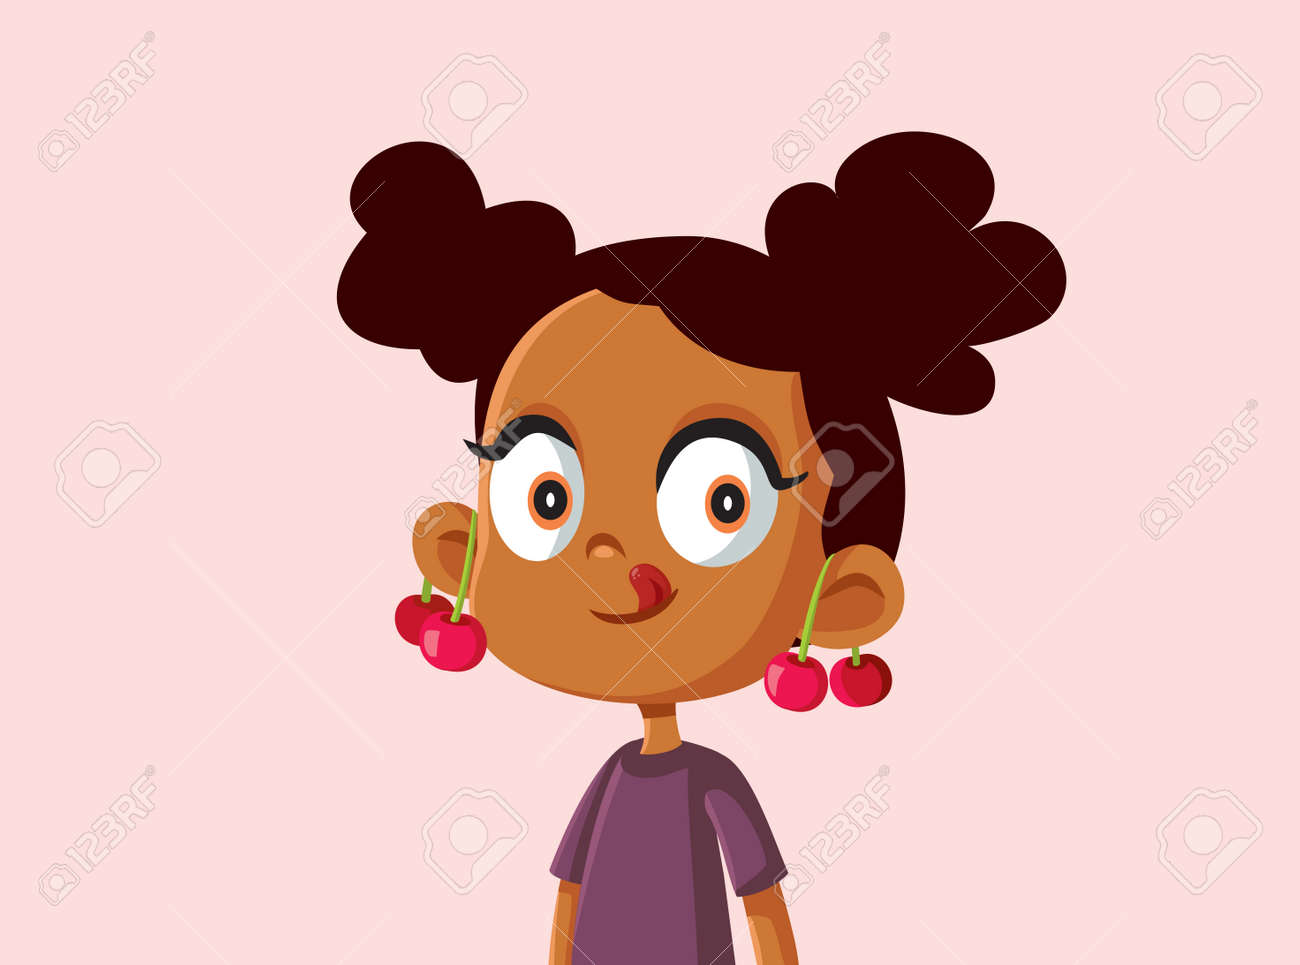 Cute African Girl with Cherries on Her Ears Vector Illustration - 171232948